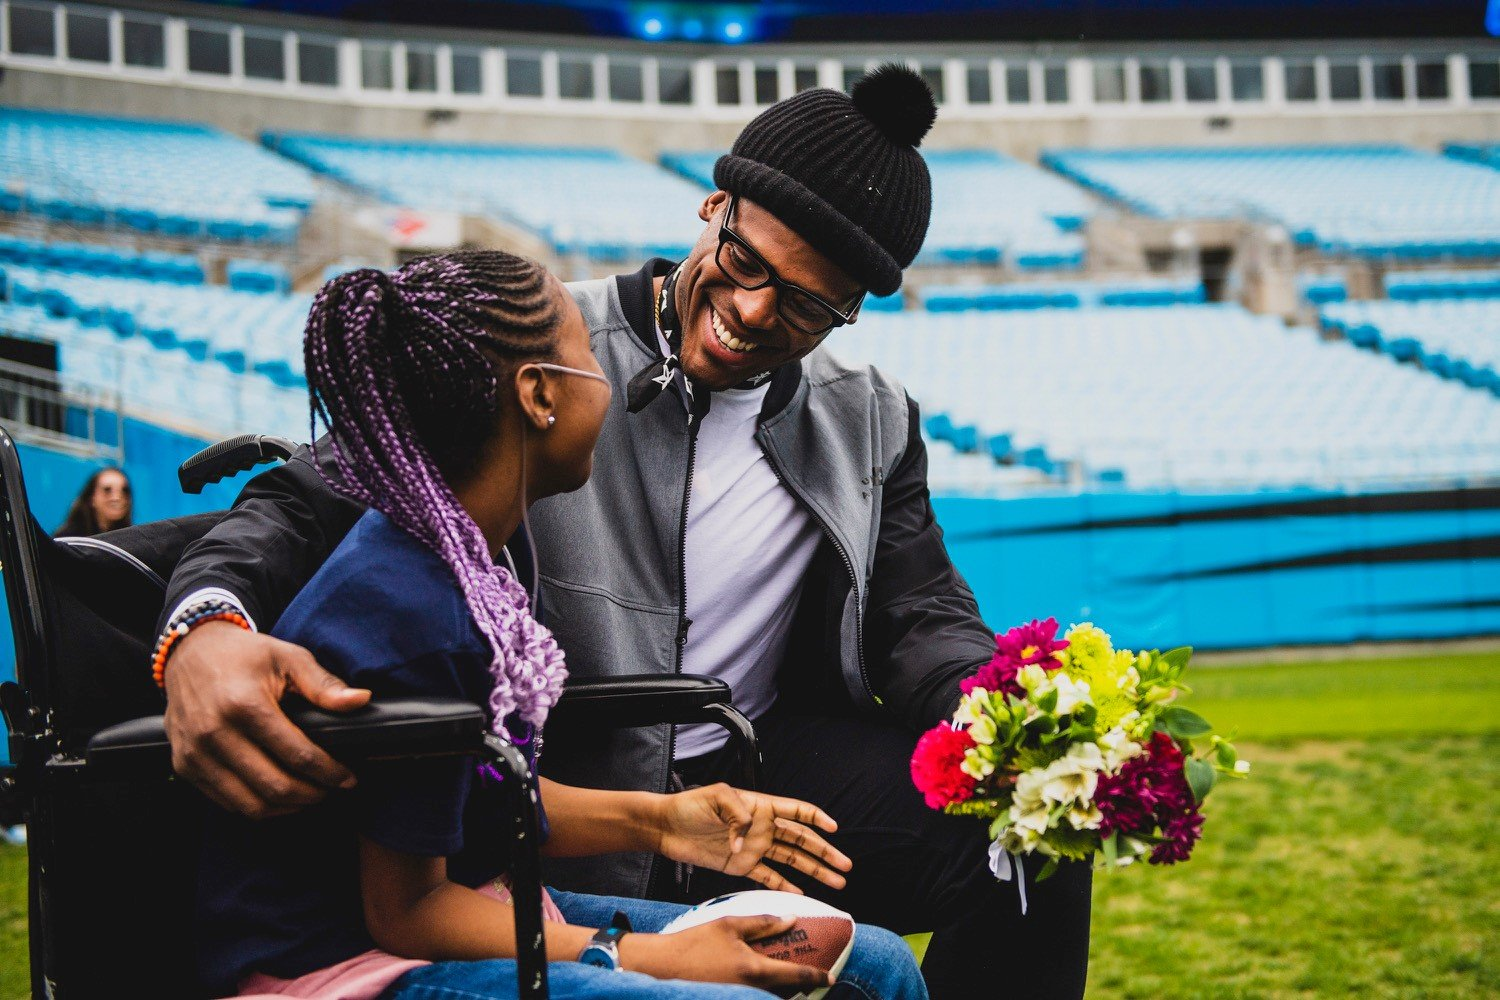 Cam Newton holding flowers and laughing with a girl with purple braids